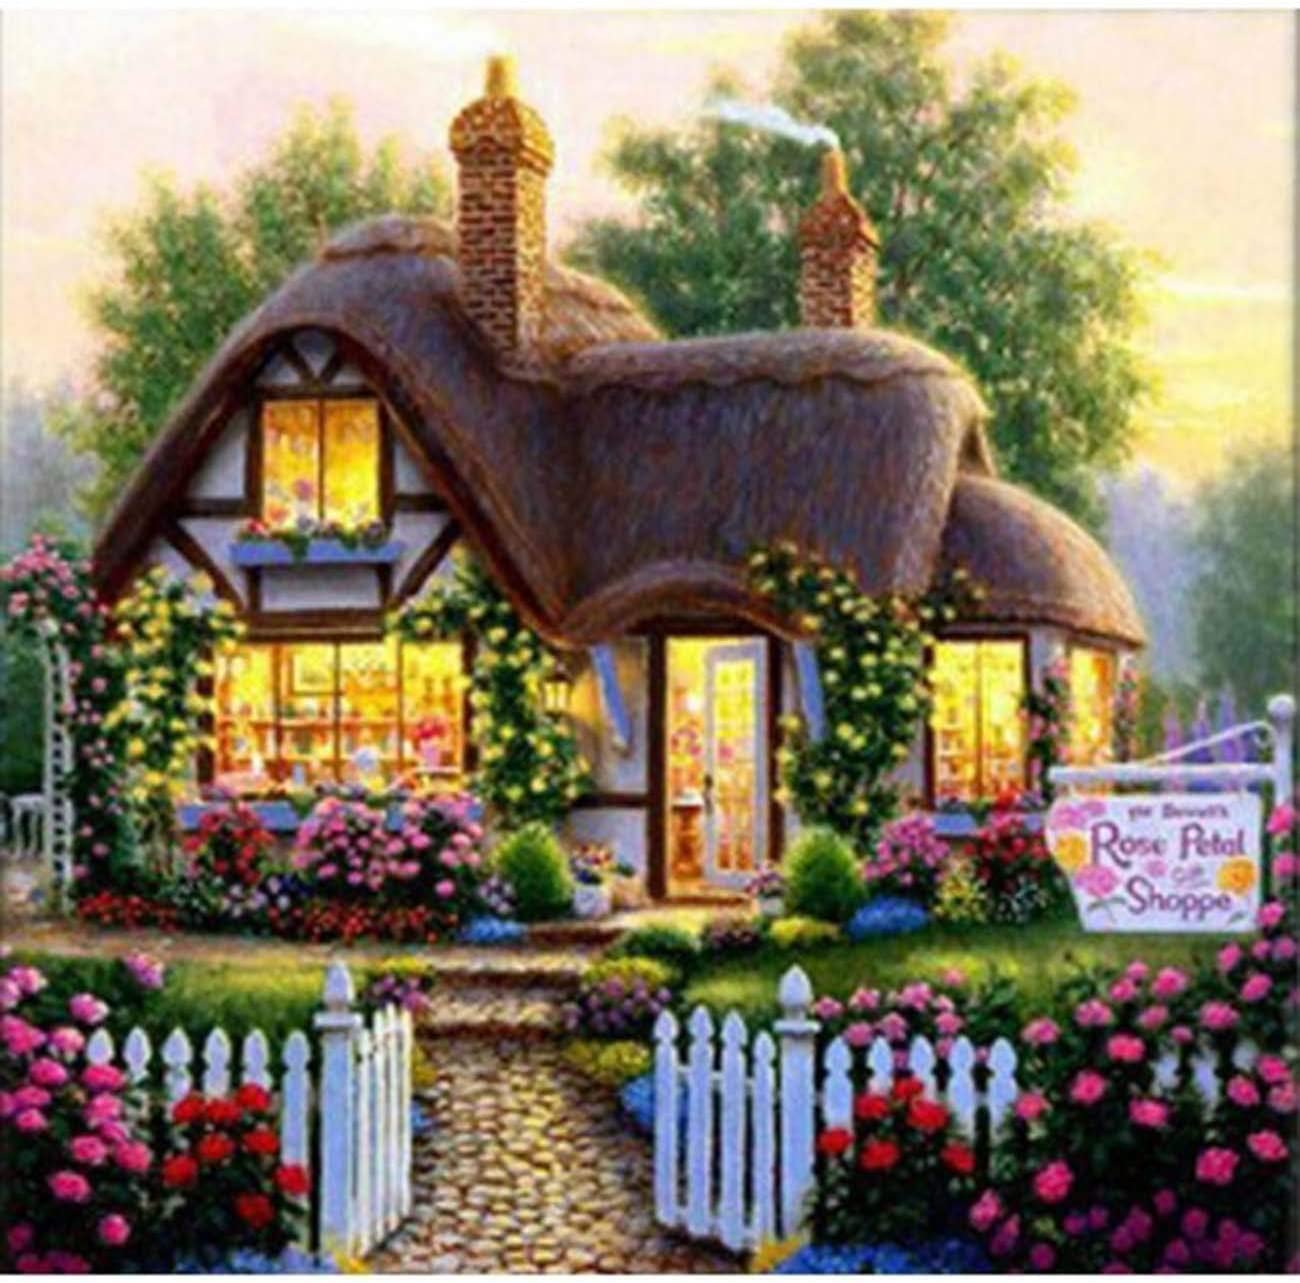 Kaliosy 5D Diamond Painting Country View Garden Cottage by Number Kits Paint with Diamonds Art, DIY Crystal Craft Full Drill Cross Stitch Decoration 14X14inch (X27500)